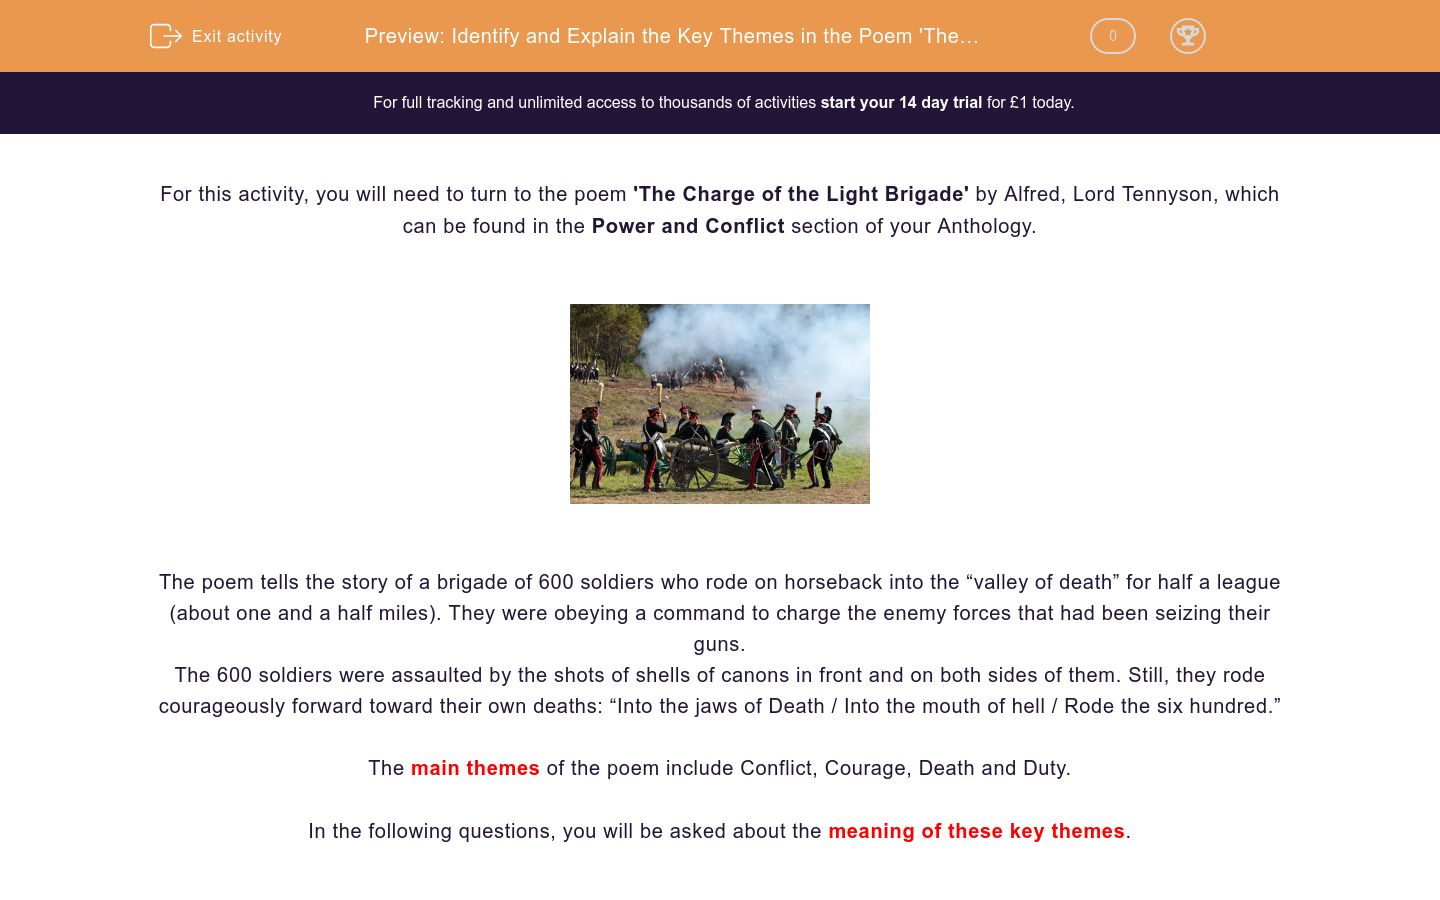 'Identify and Explain the Key Themes in the Poem 'The Charge of the Light Brigade' ' worksheet